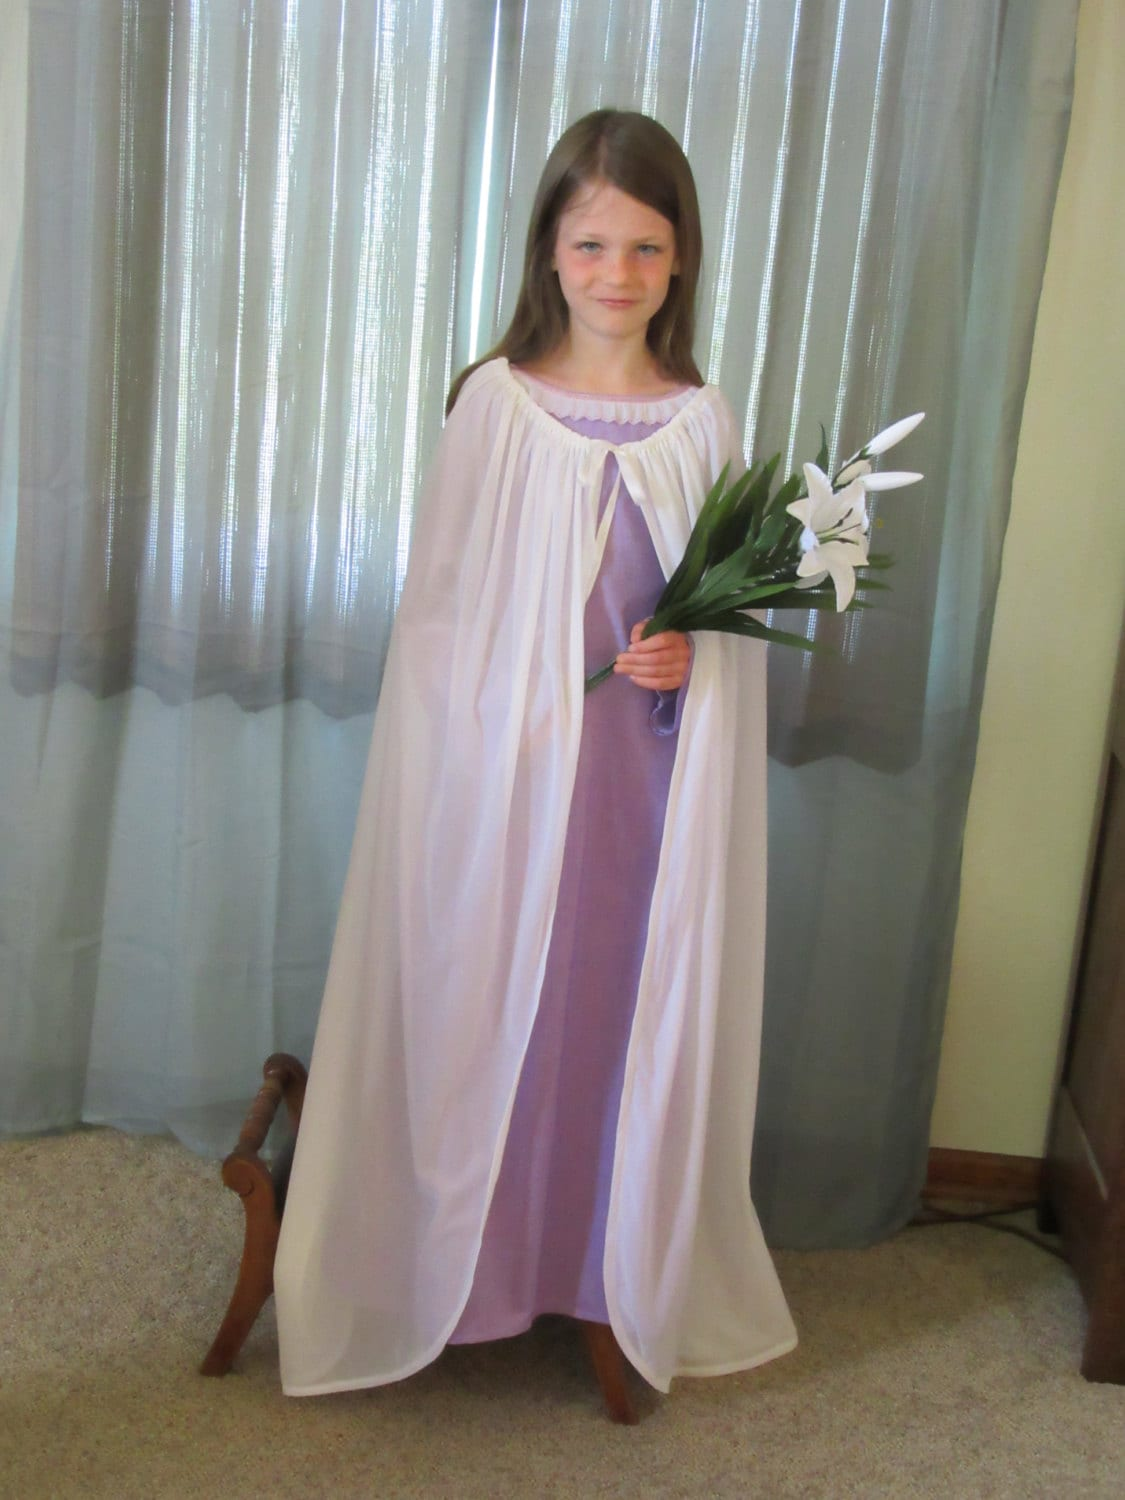 St. Maria Goretti Costume for Girls with Palm Frond and Lily | Etsy